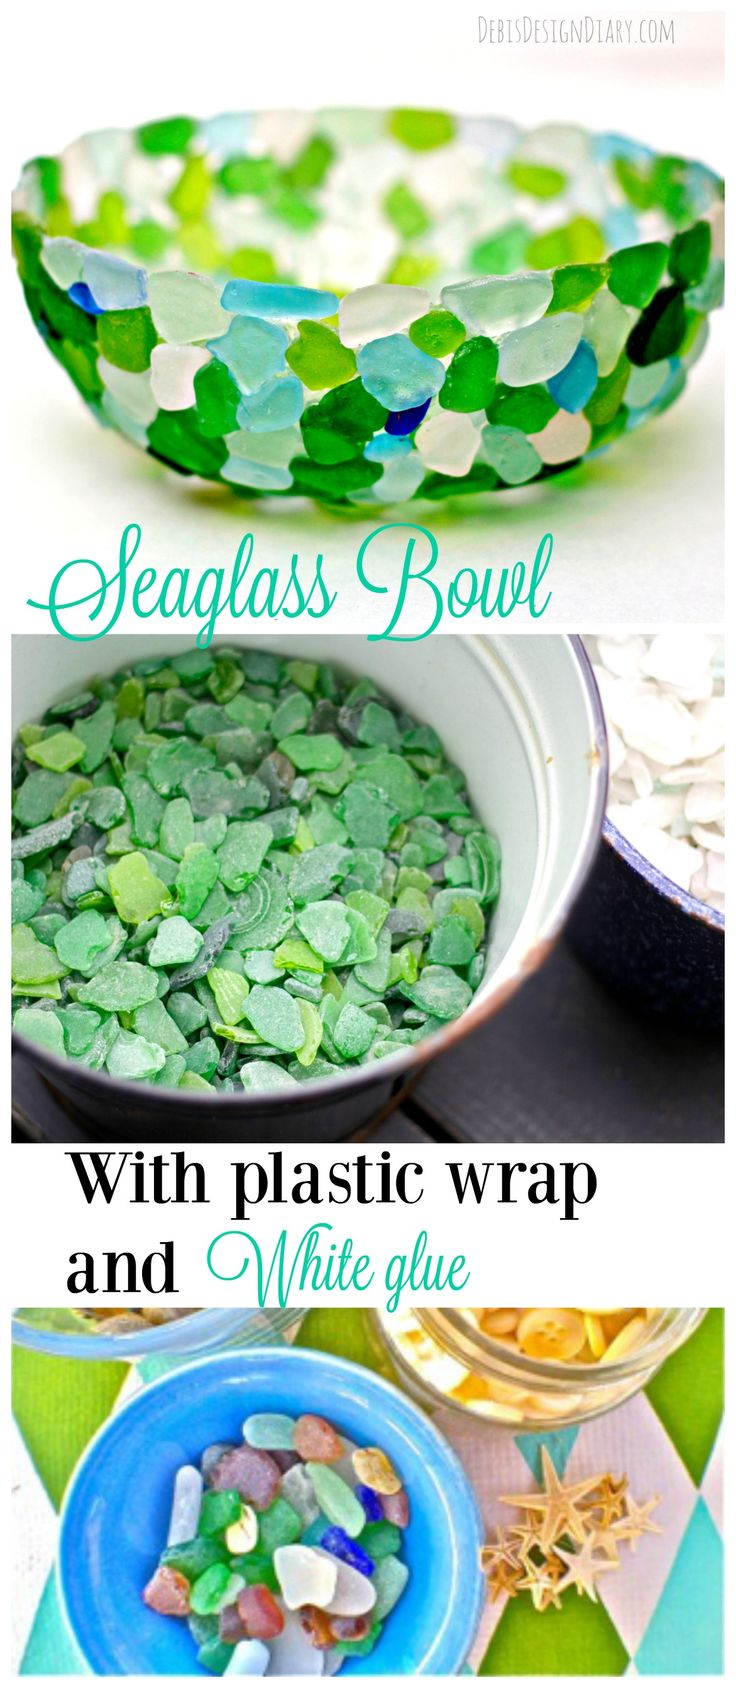 how to make a sea glass bowl with plastic wrap and white glue